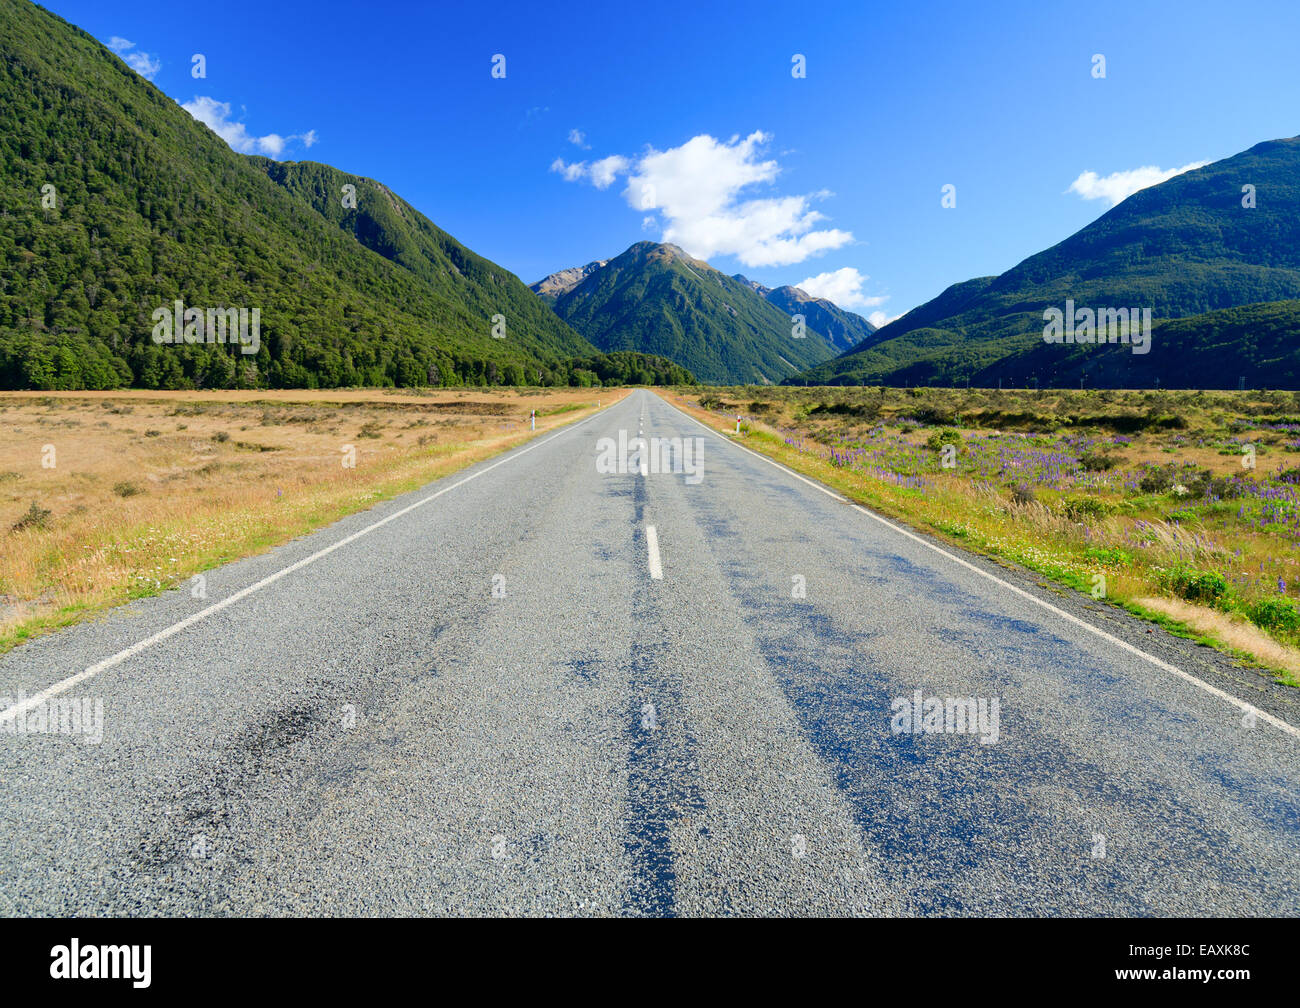 Scenic mountain road in the Southern Alps of the South Island of New Zealand Stock Photo